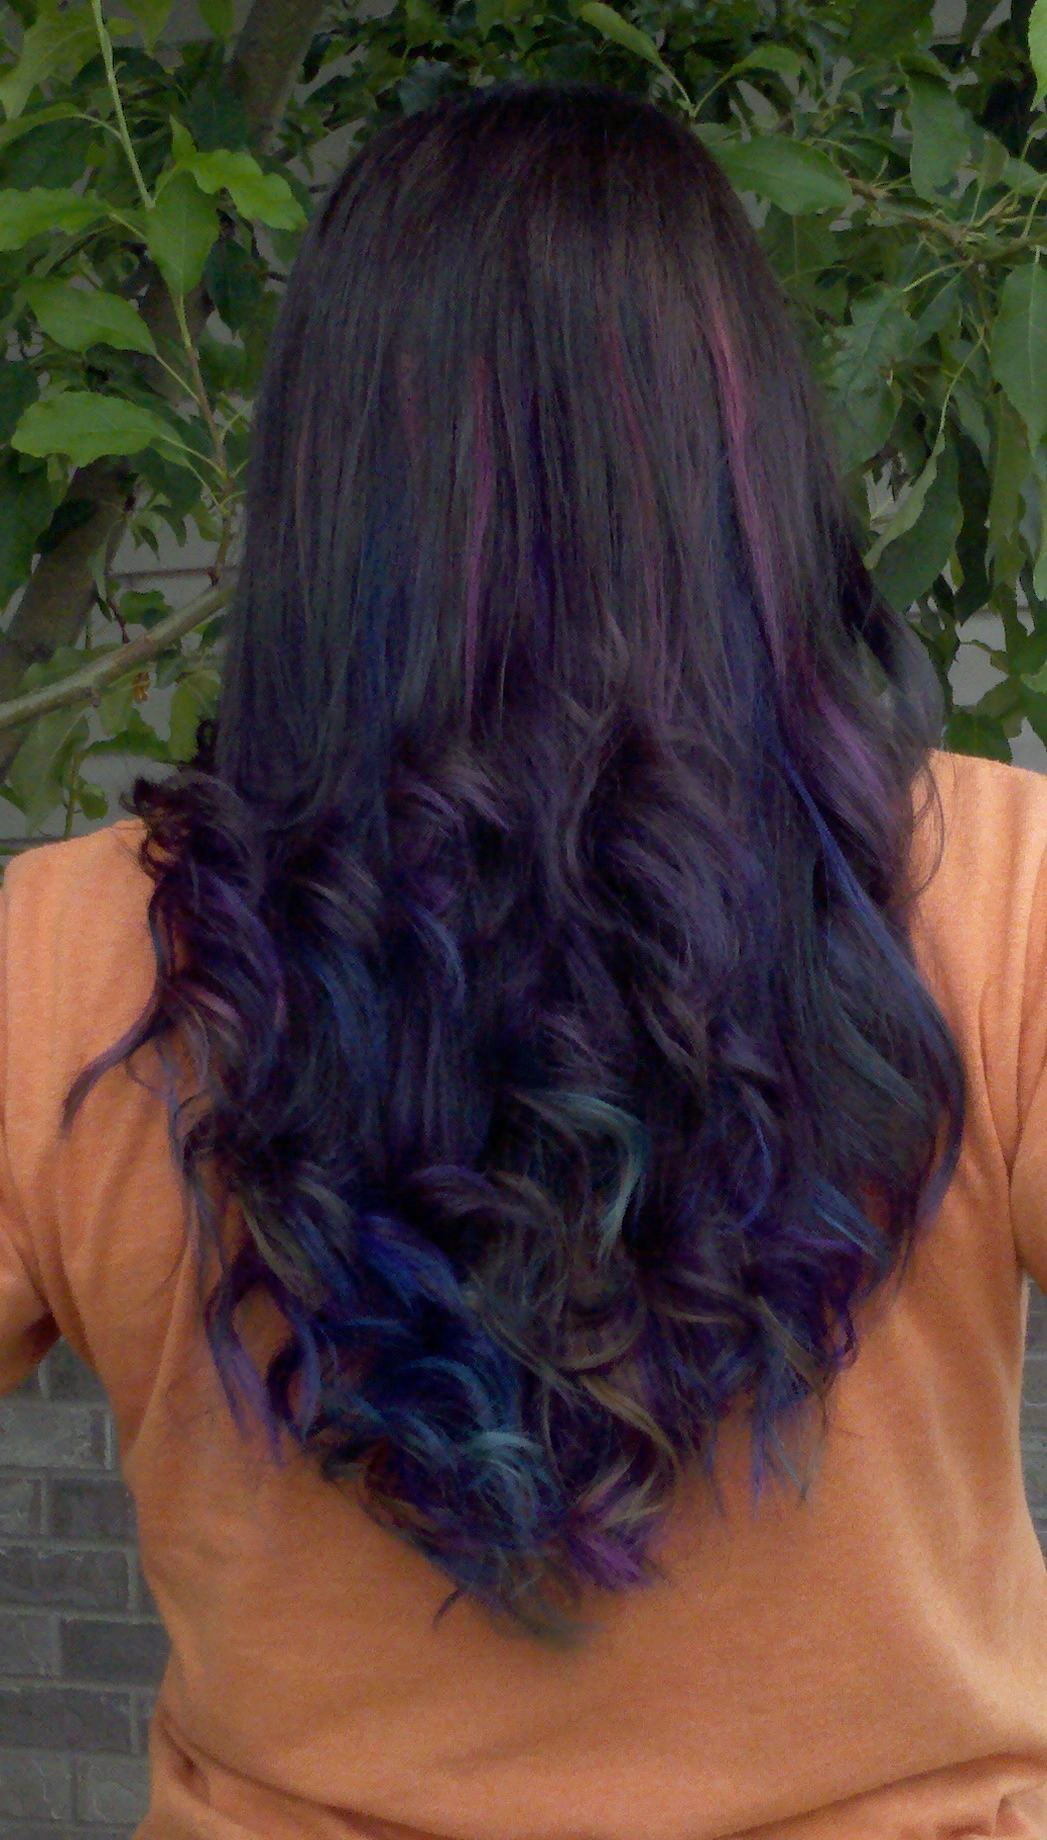 Fashion style Brown Dark hair with purple underneath for woman